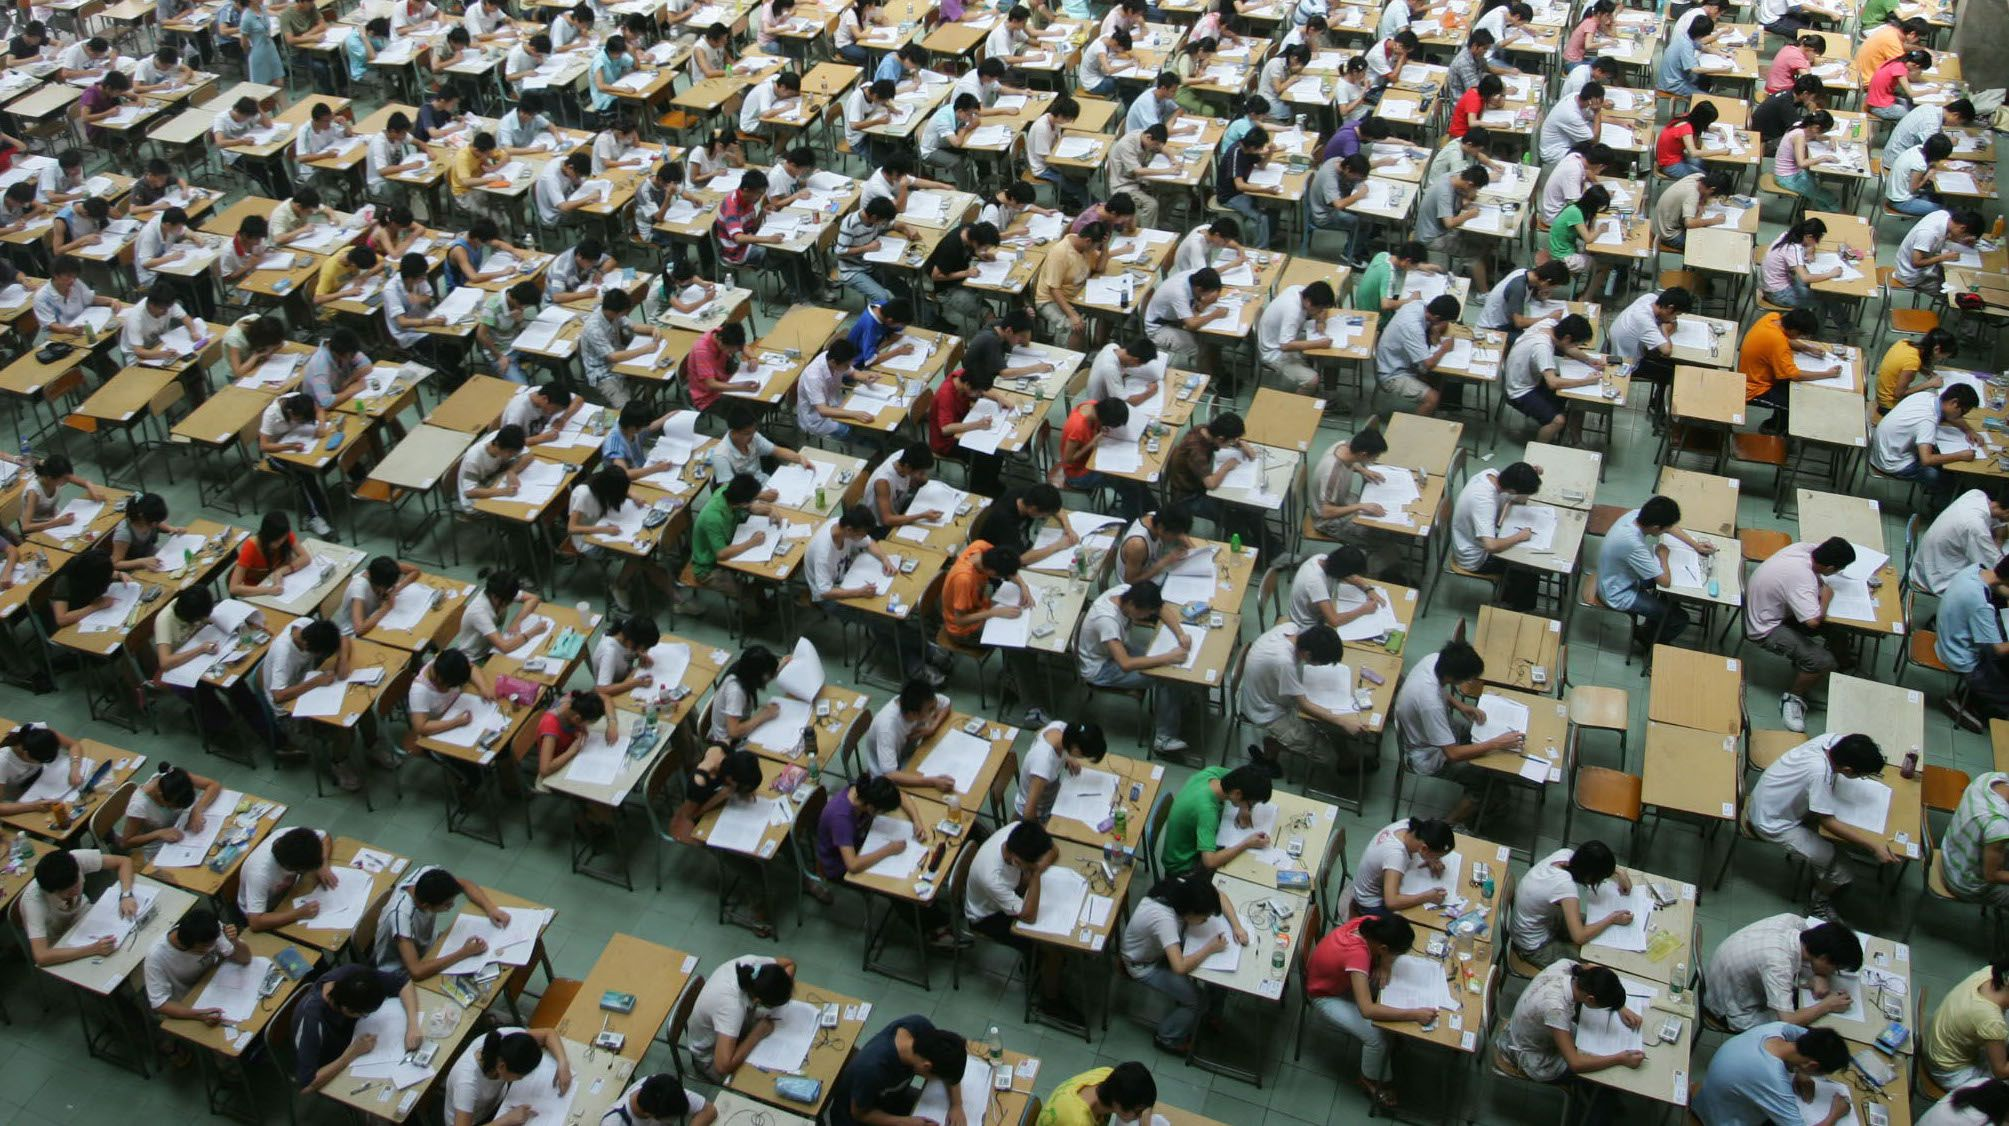 Students sit an English examination in the hall of a building in the Dongguan Technology Institute, in China's southern Guangdong Province, Monday, July 9, 2007. Some 1,200 students of different year levels were made to sit different exams in the hall in an effort to prevent cheating. (AP Photo/EyePress